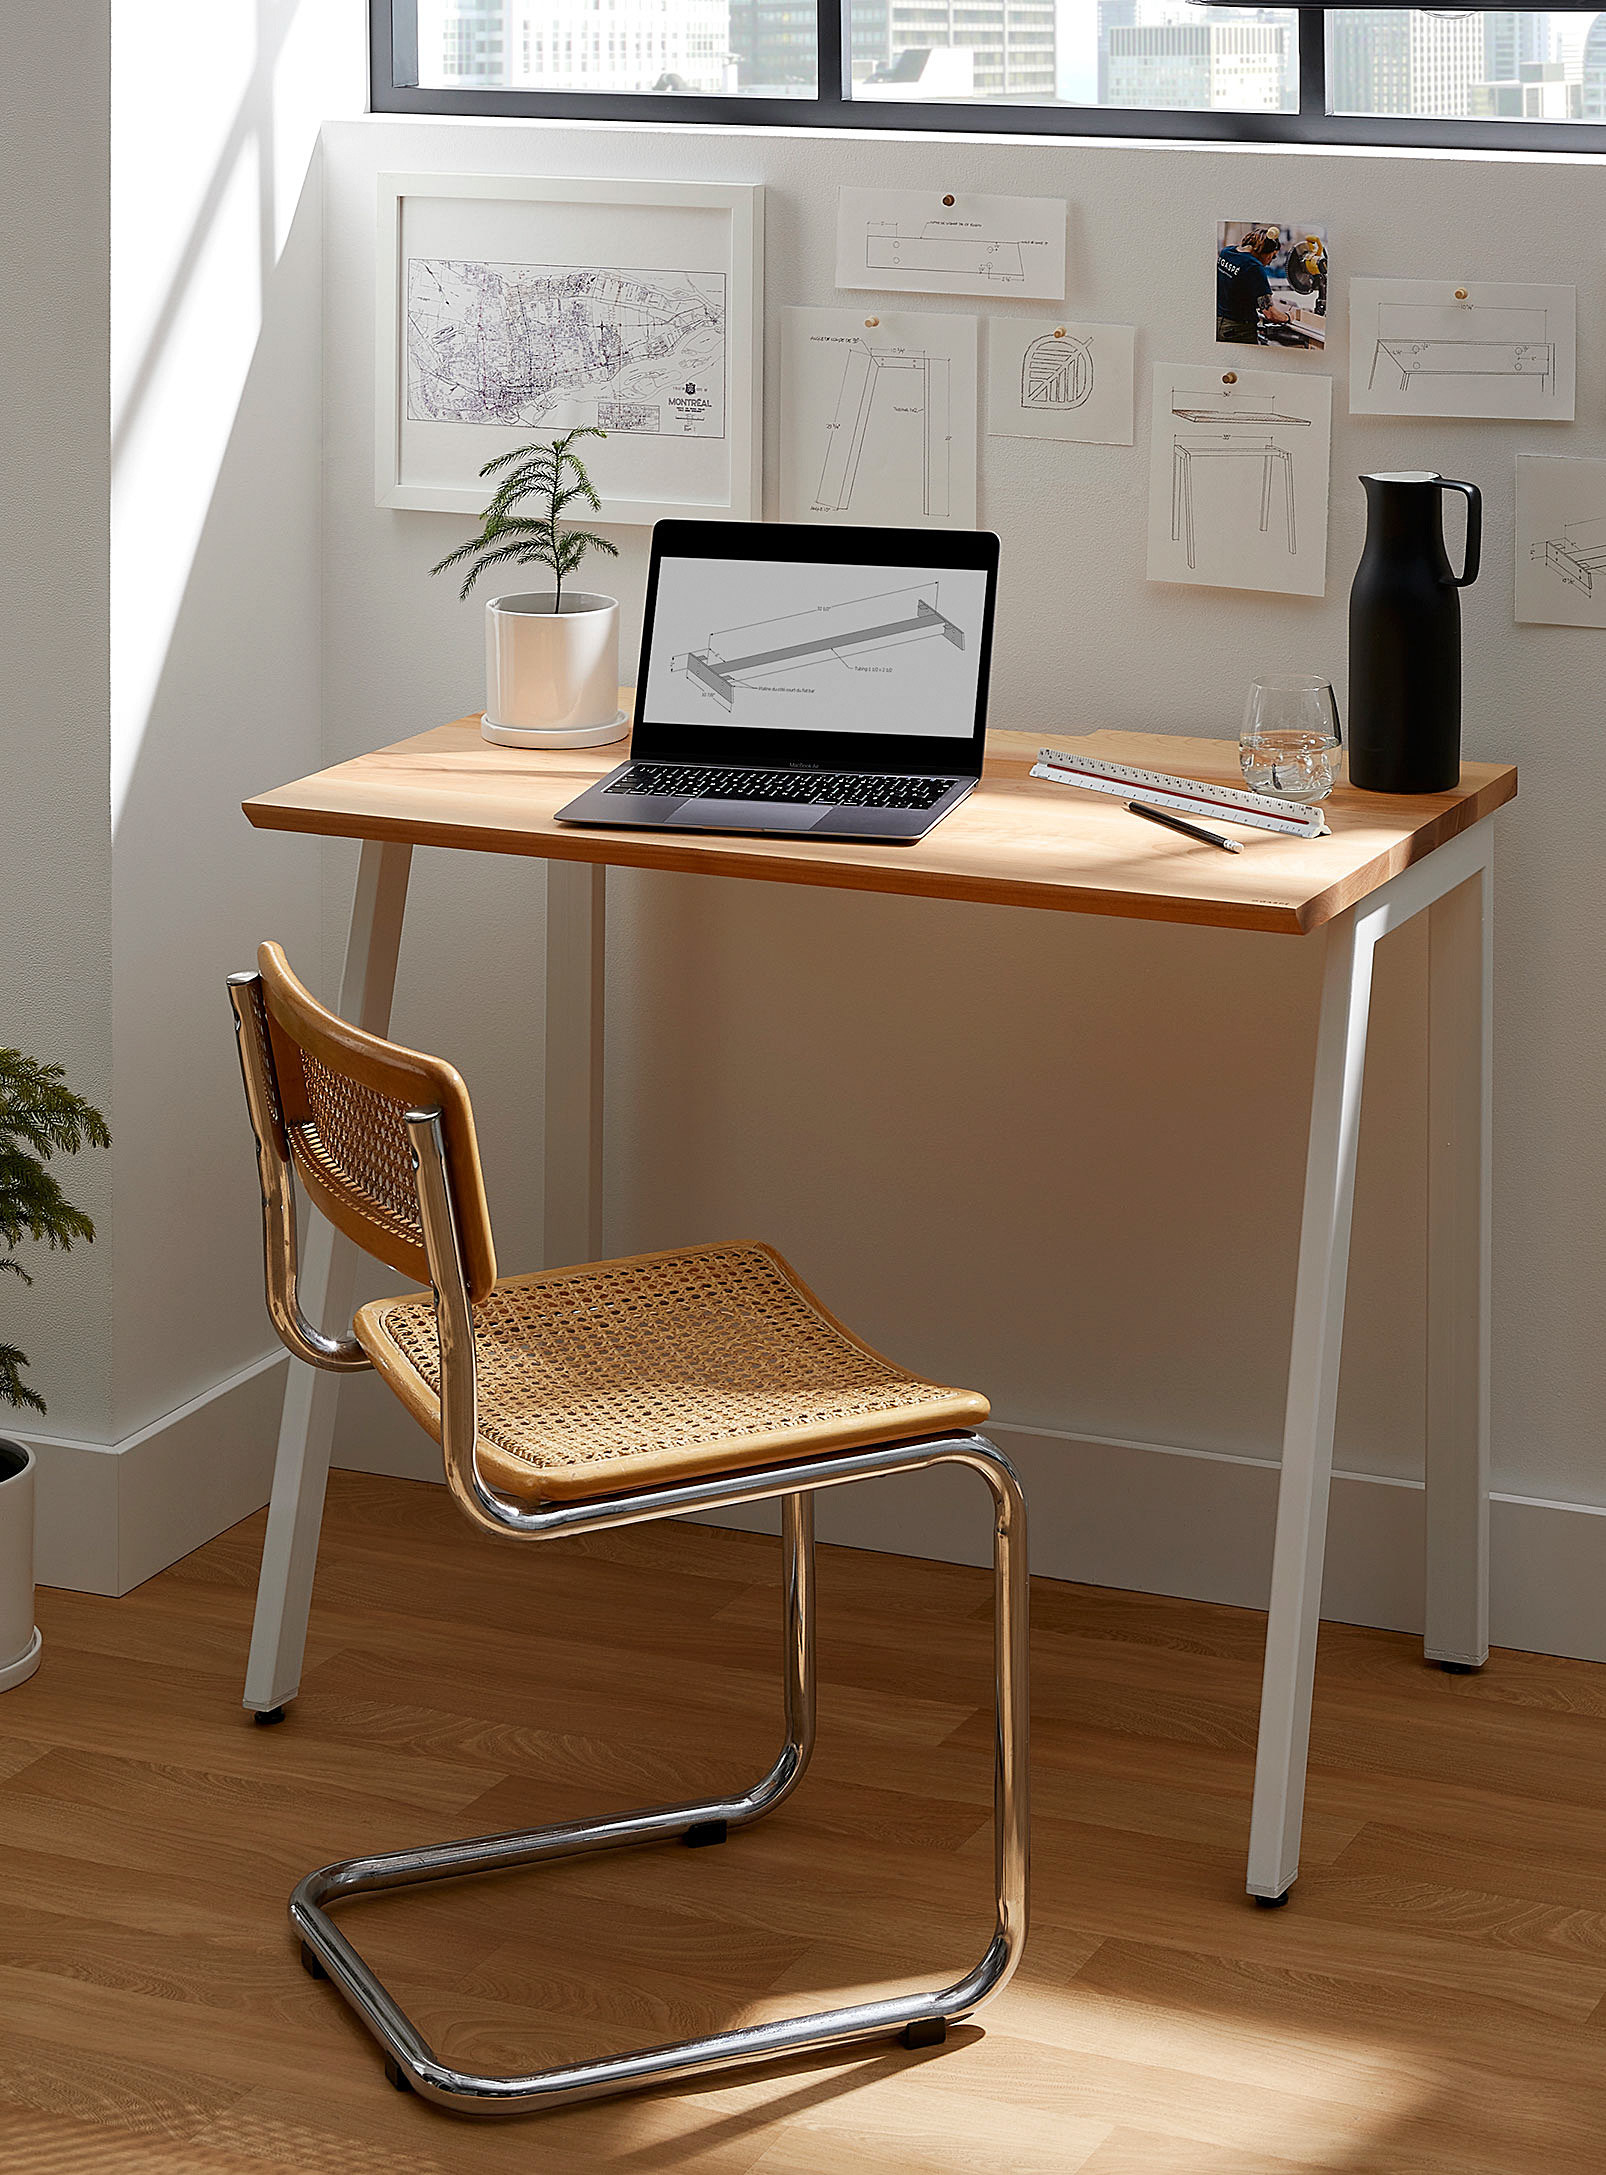 A small desk and chair by a window